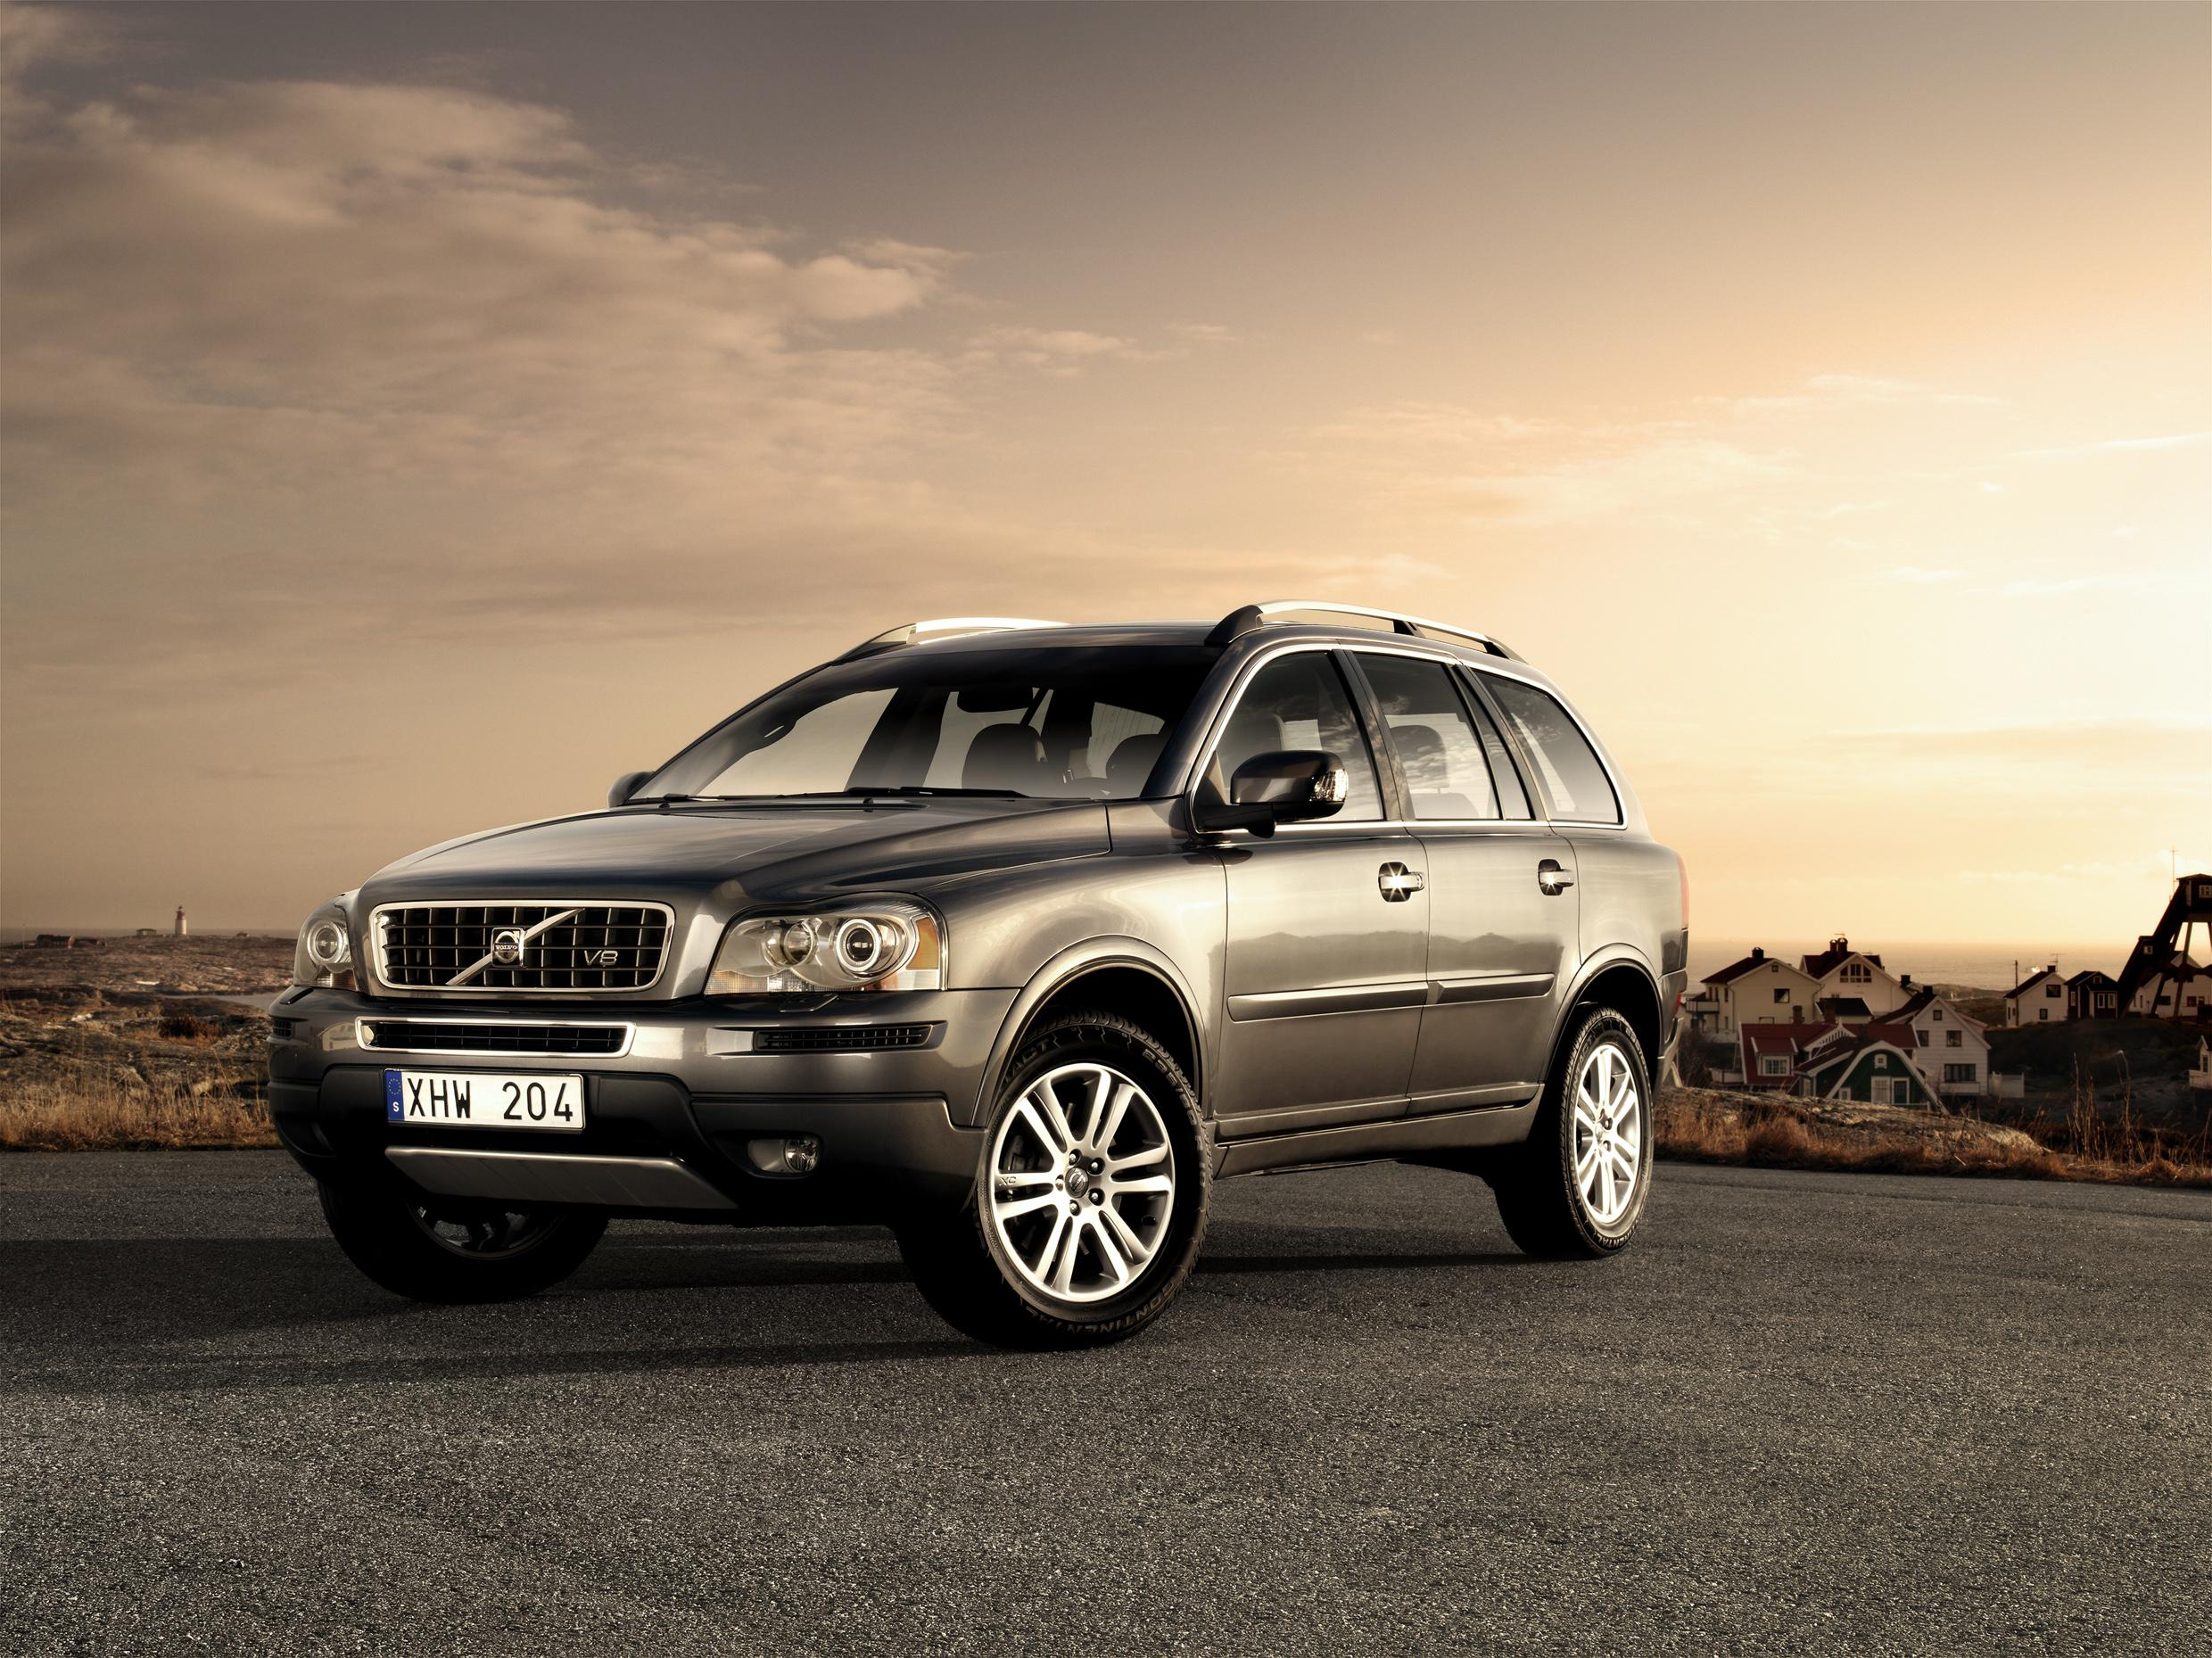 Iihs Safety Ratings >> 2007 Volvo XC90 Rated Top Safety Pick By IIHS | Top Speed